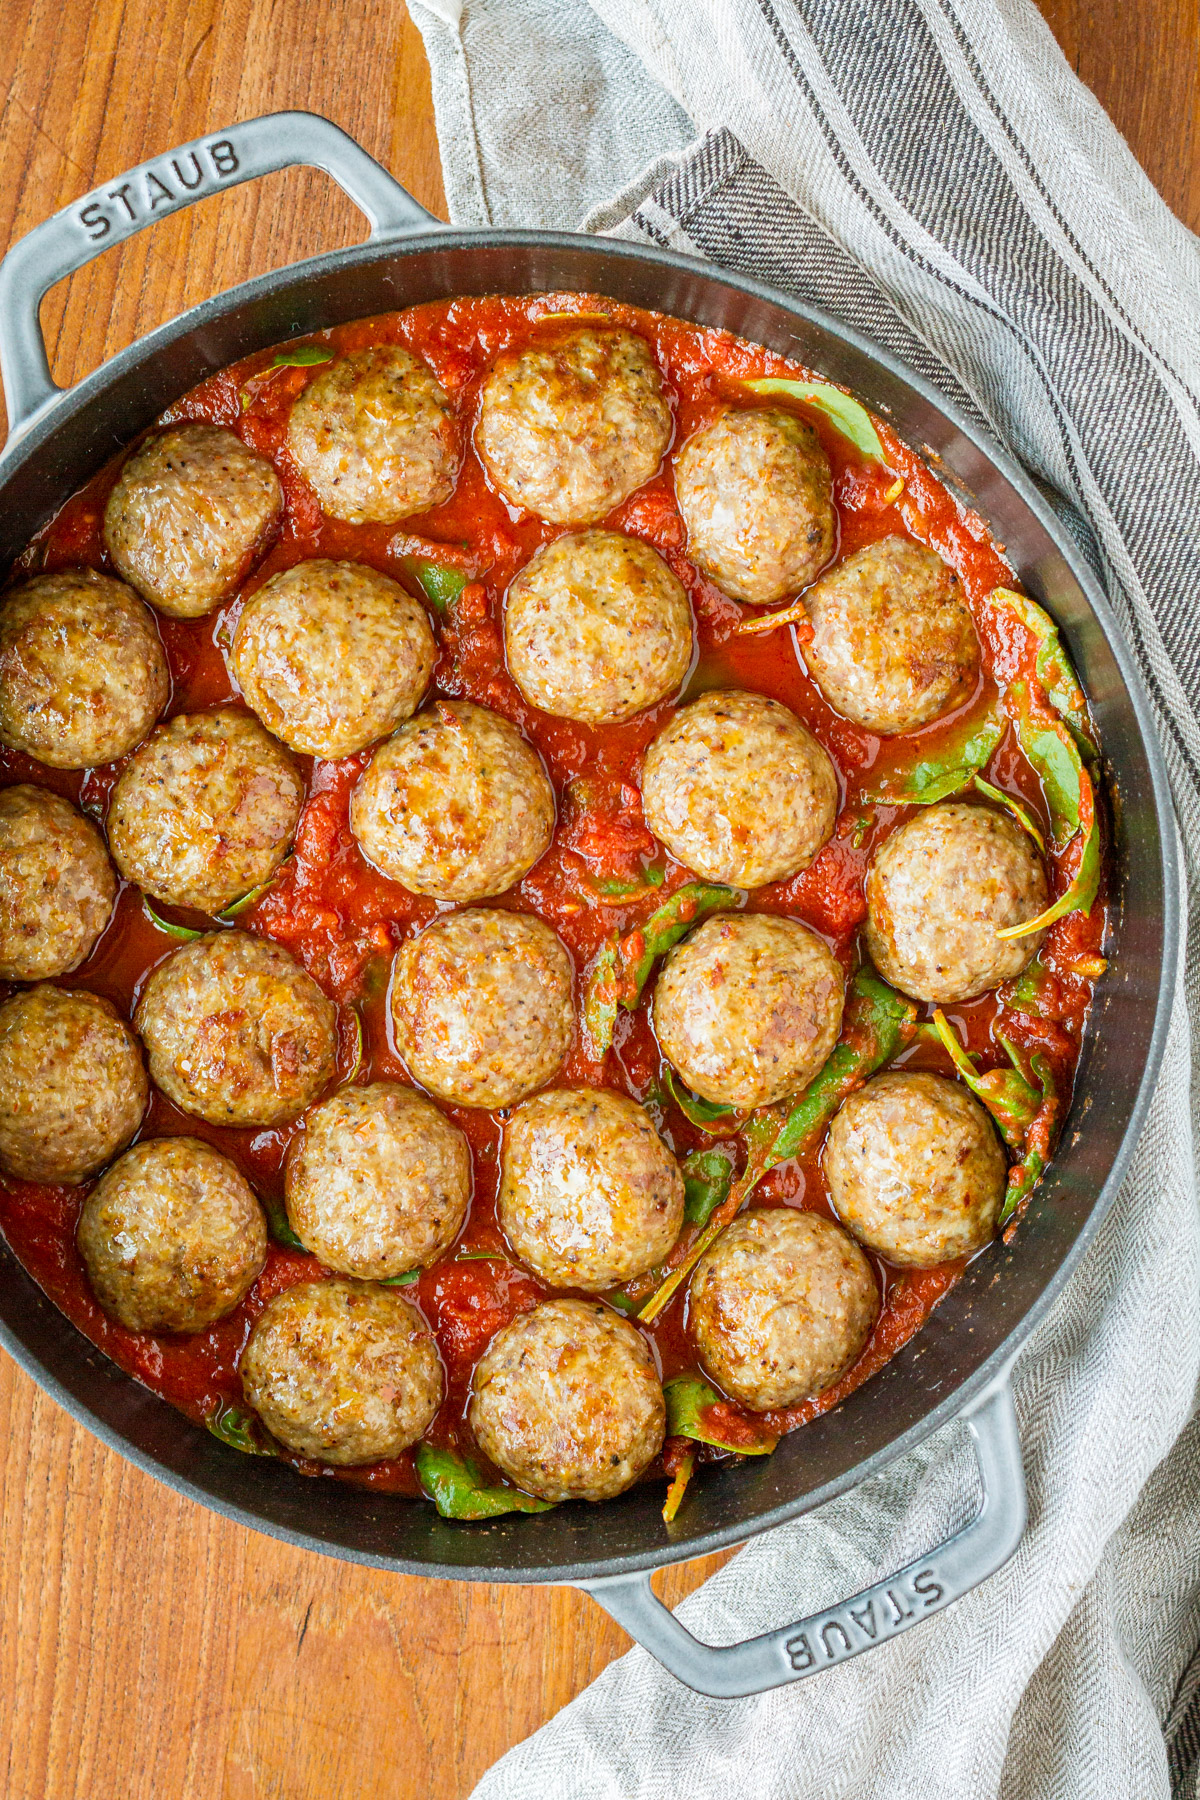 cheesy meatball recipe in a gray enamel cast iron skillet with a linen towel